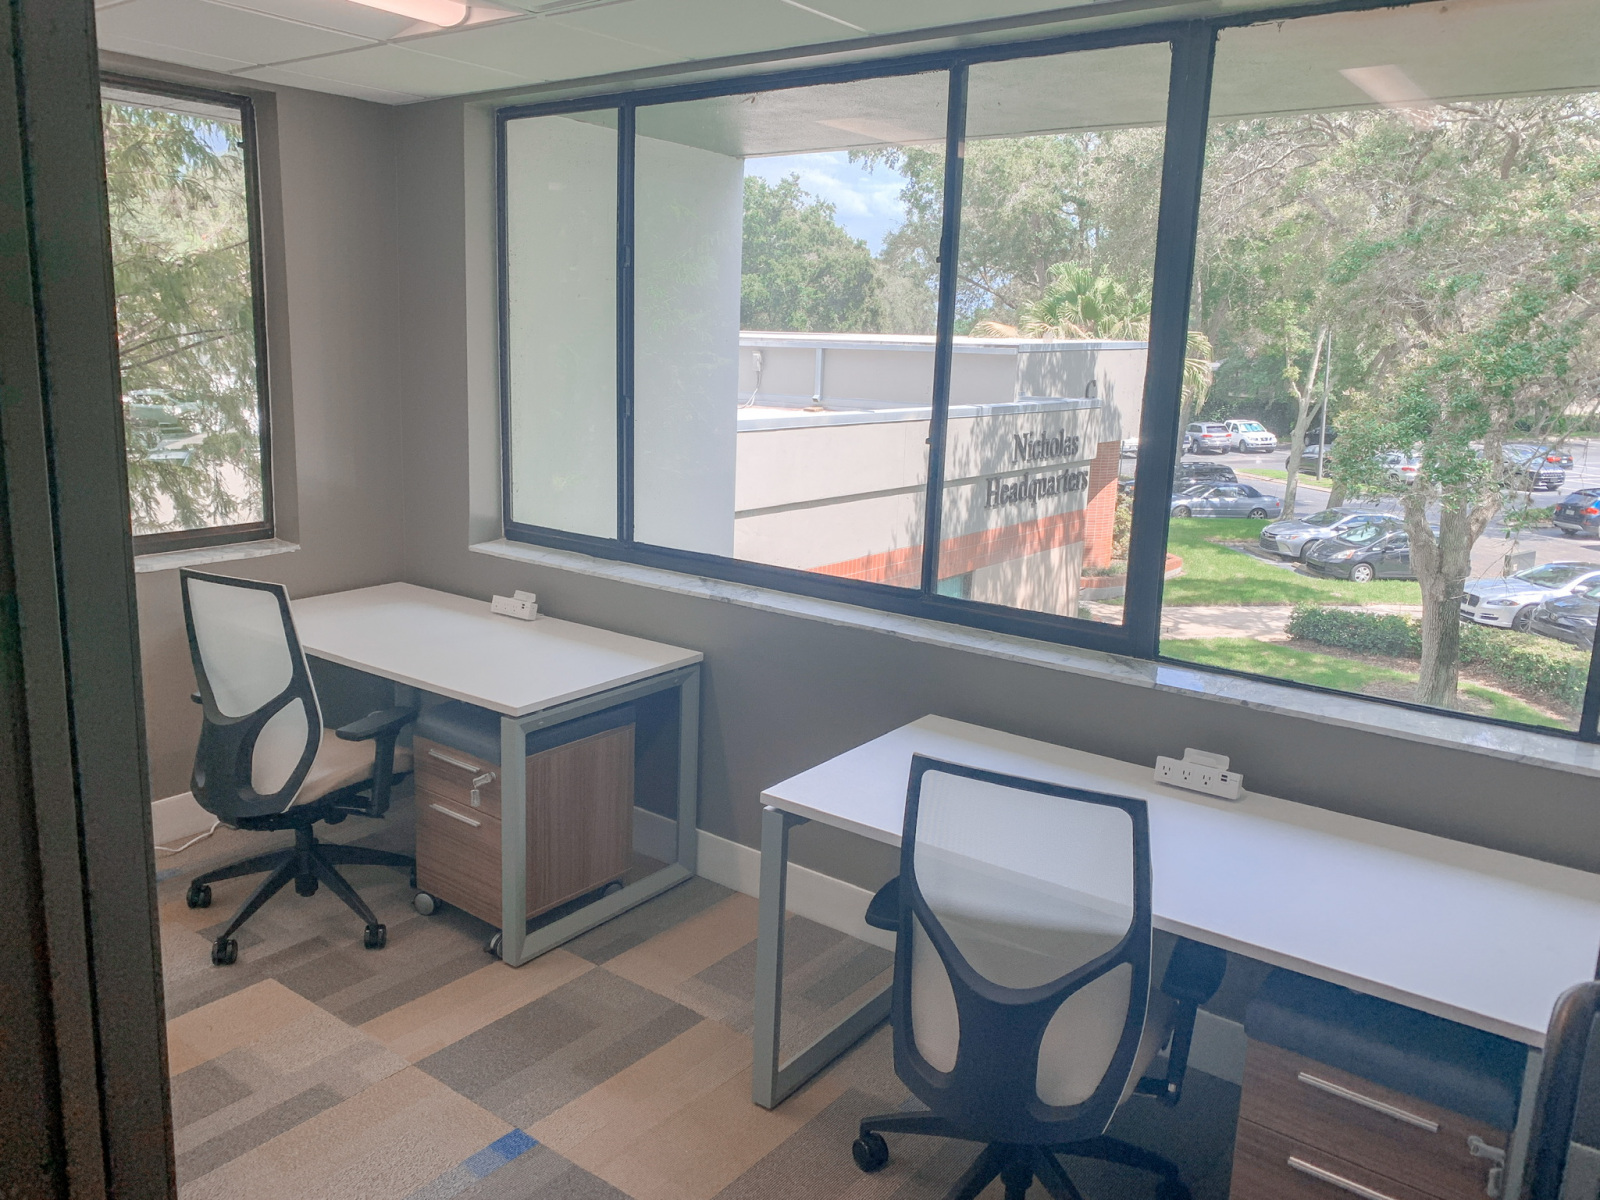 northwood_double-private-office-2